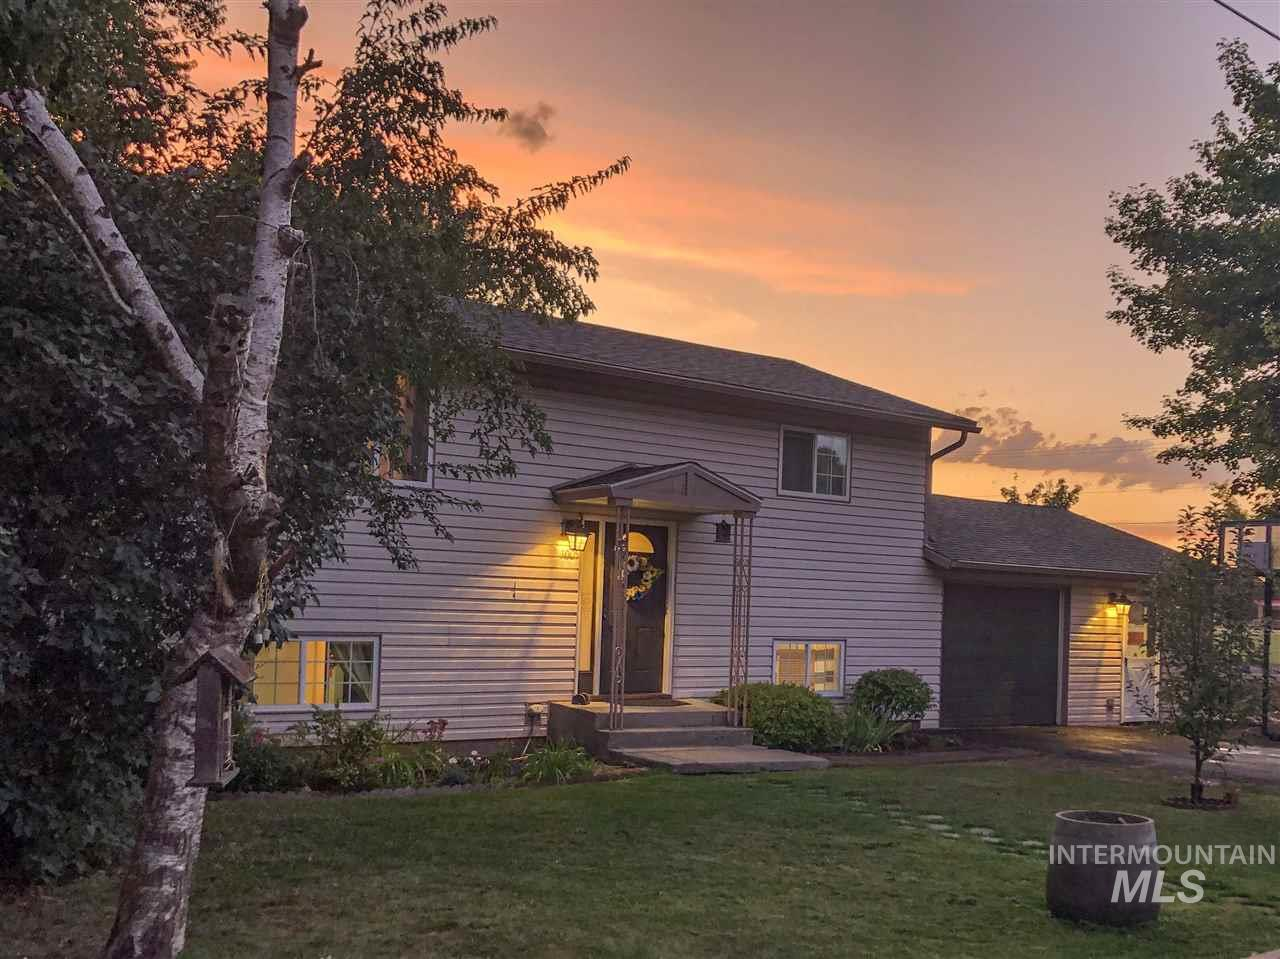 1005 S Meadow, Moscow, Idaho 83843, 4 Bedrooms, 1.5 Bathrooms, Residential For Sale, Price $262,300, 98743844